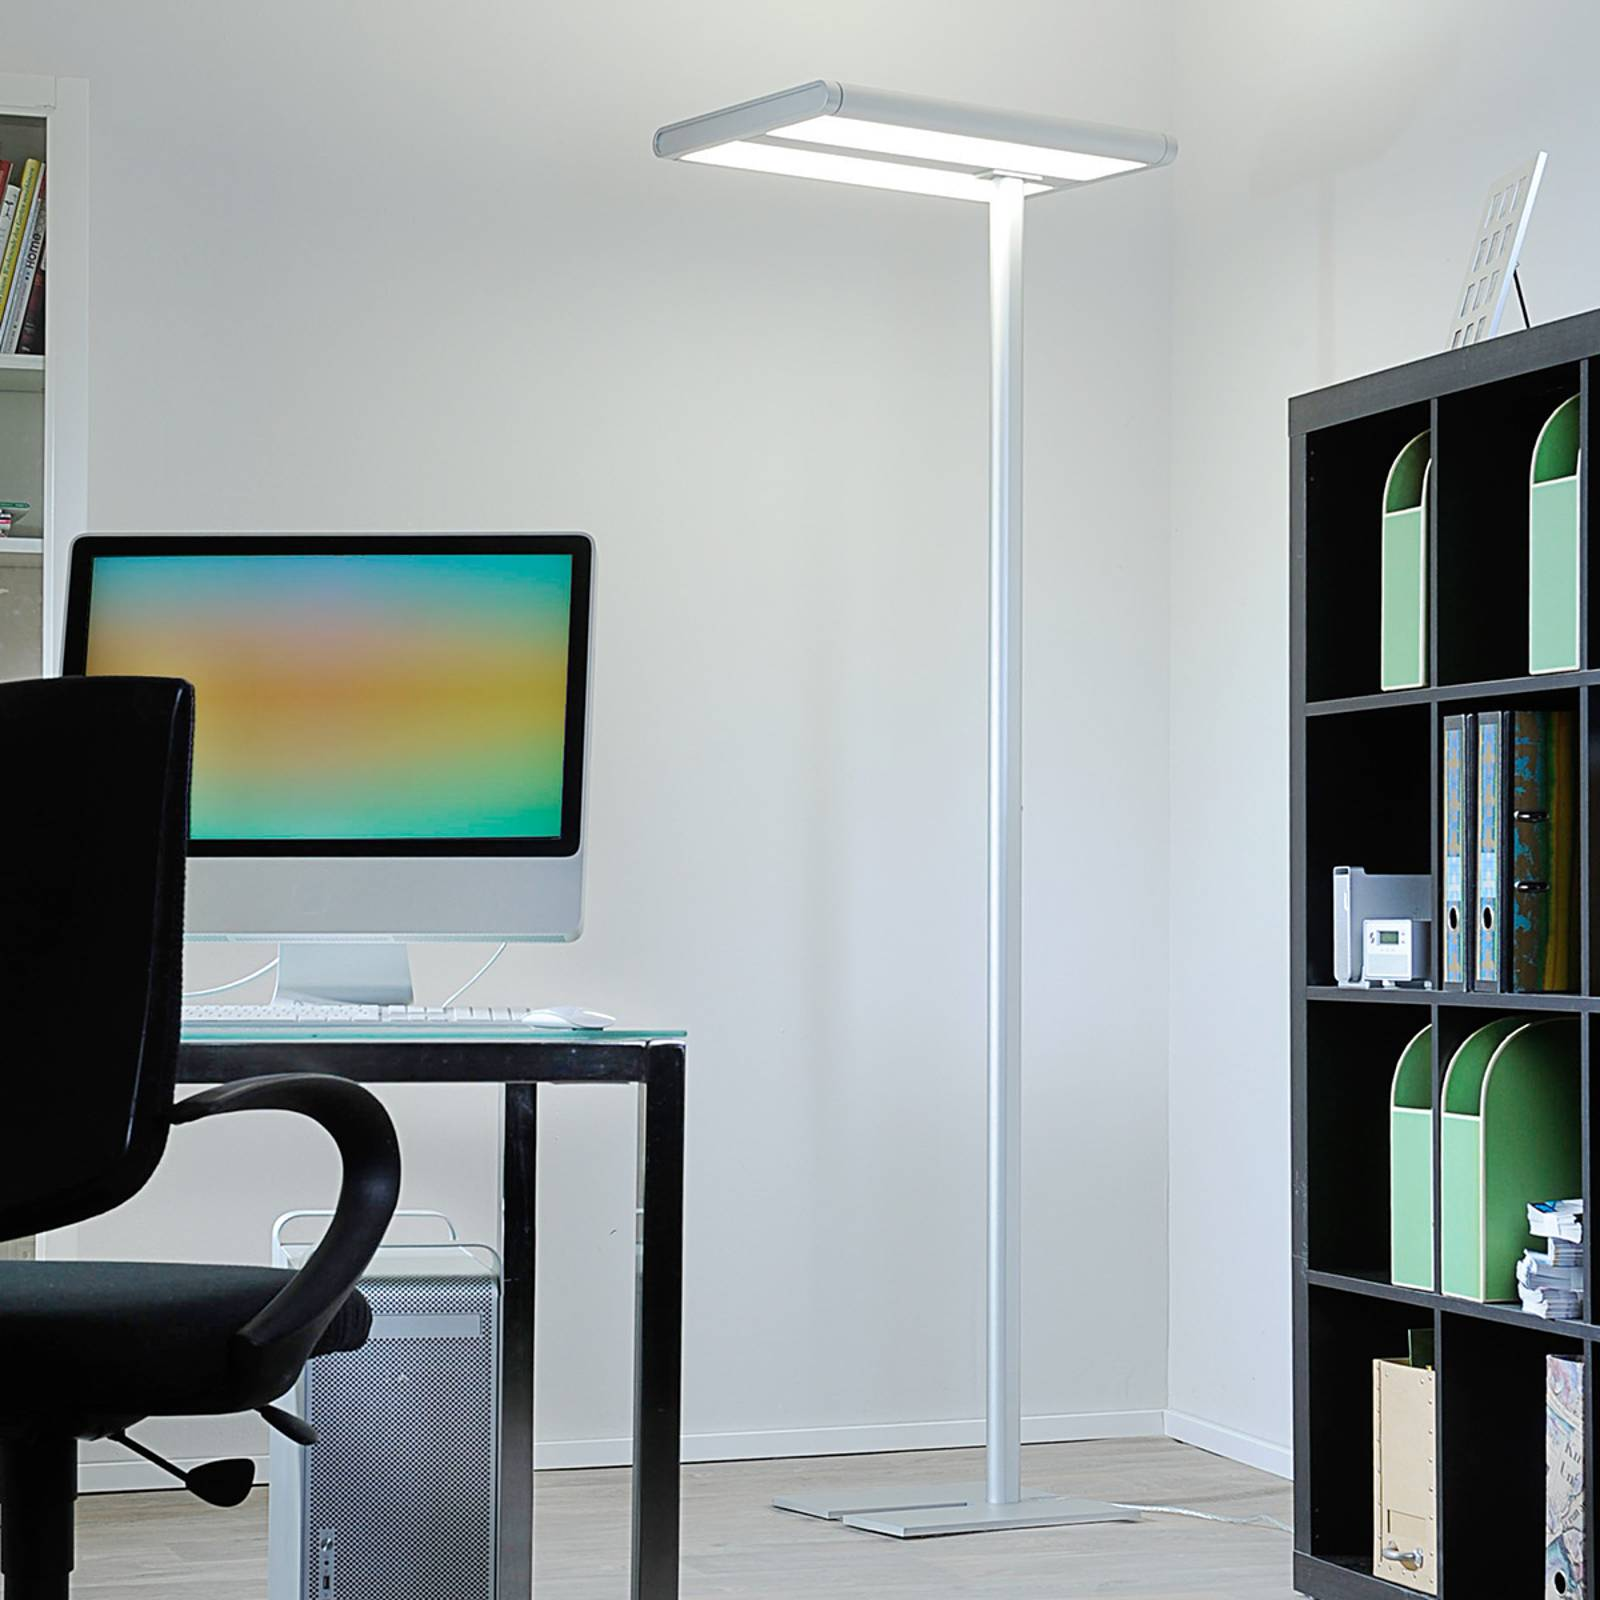 High-quality office floor lamp Quirin with LEDs from LAMPENWELT.COM